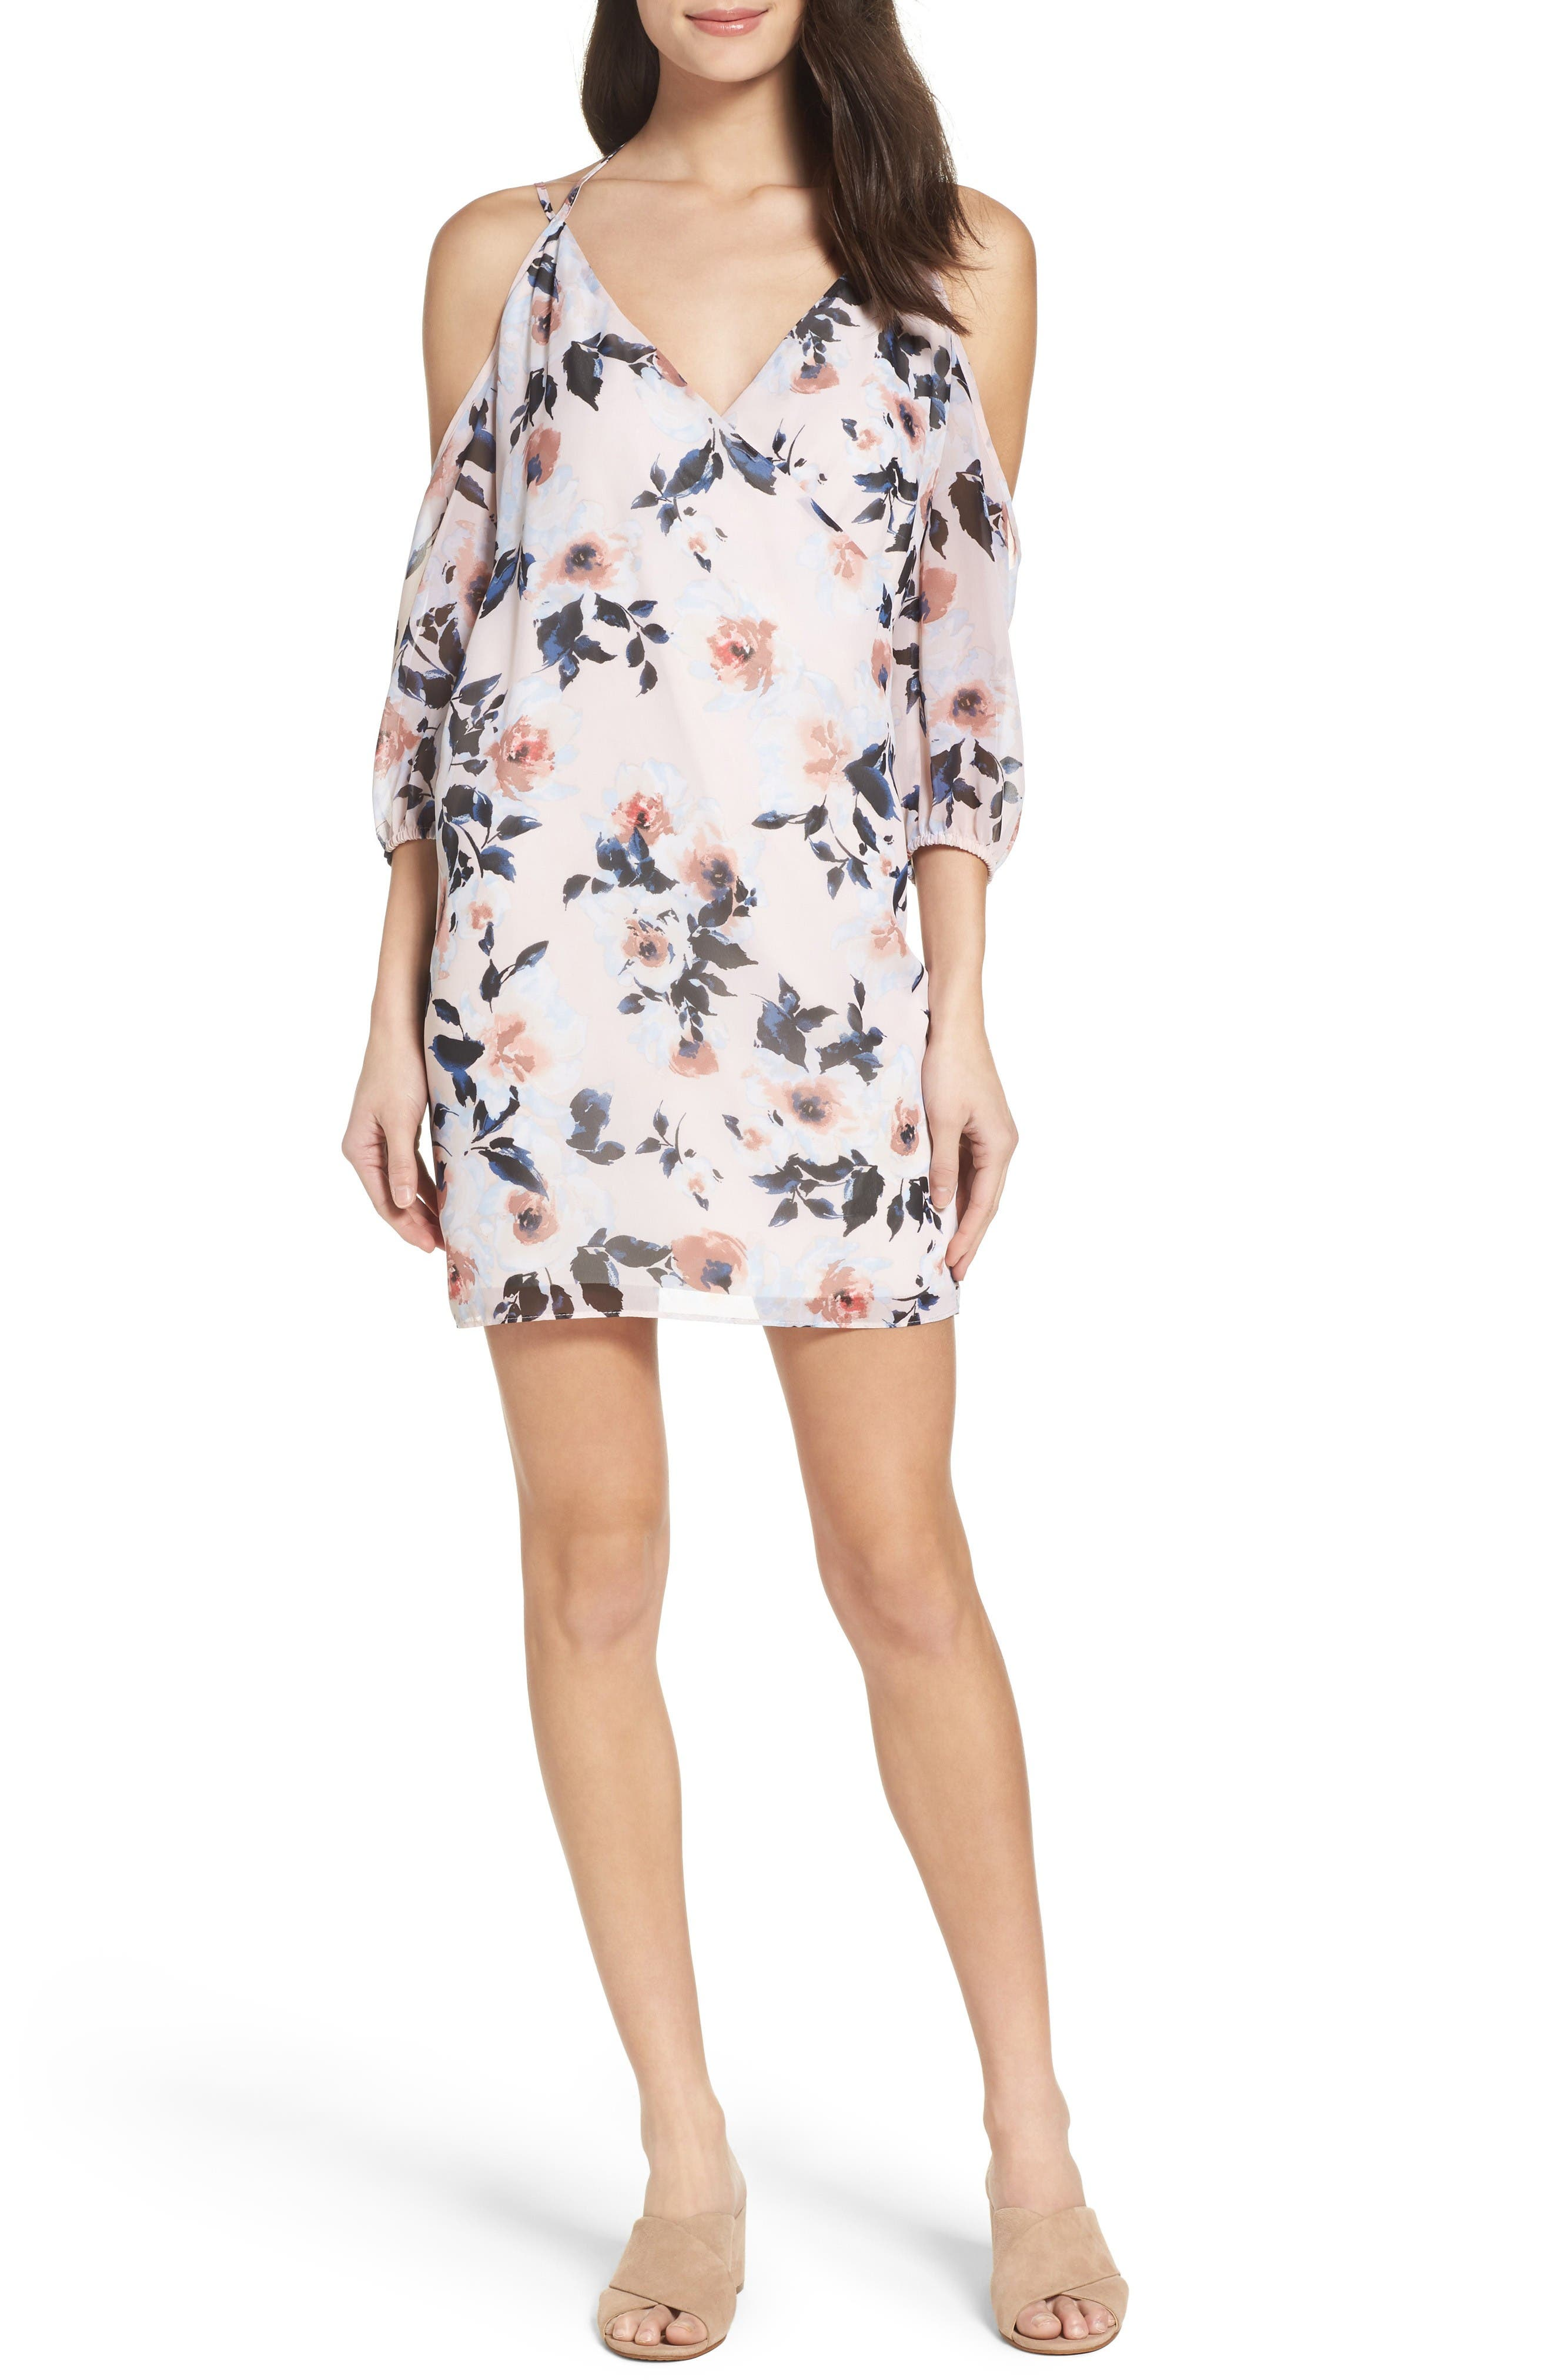 Ali & Jay Everything's Coming up Rosy Cold Shoulder Dress